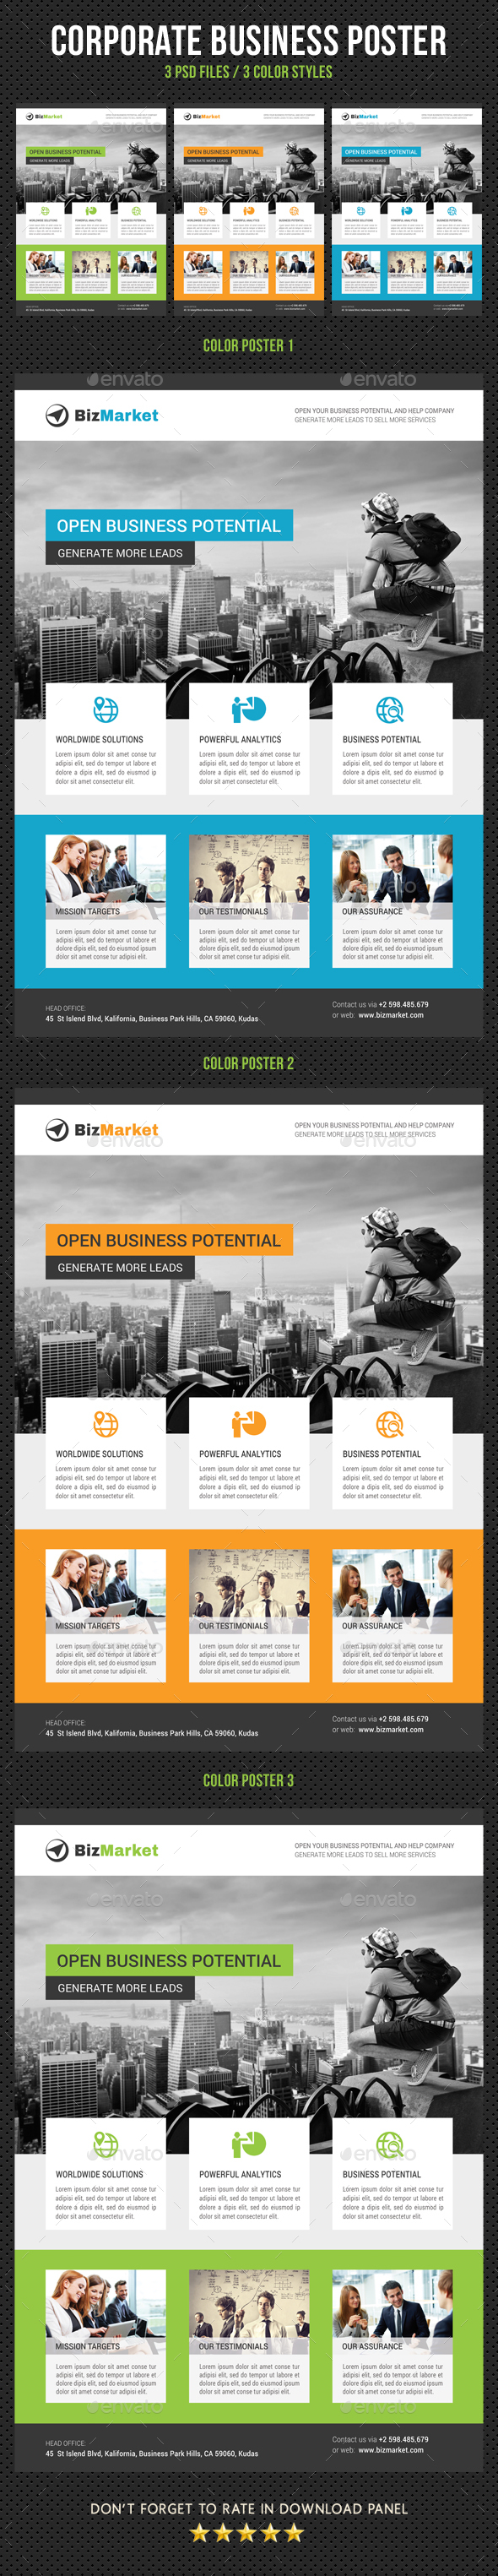 Corporate Business Poster Template V20 - Signage Print Templates